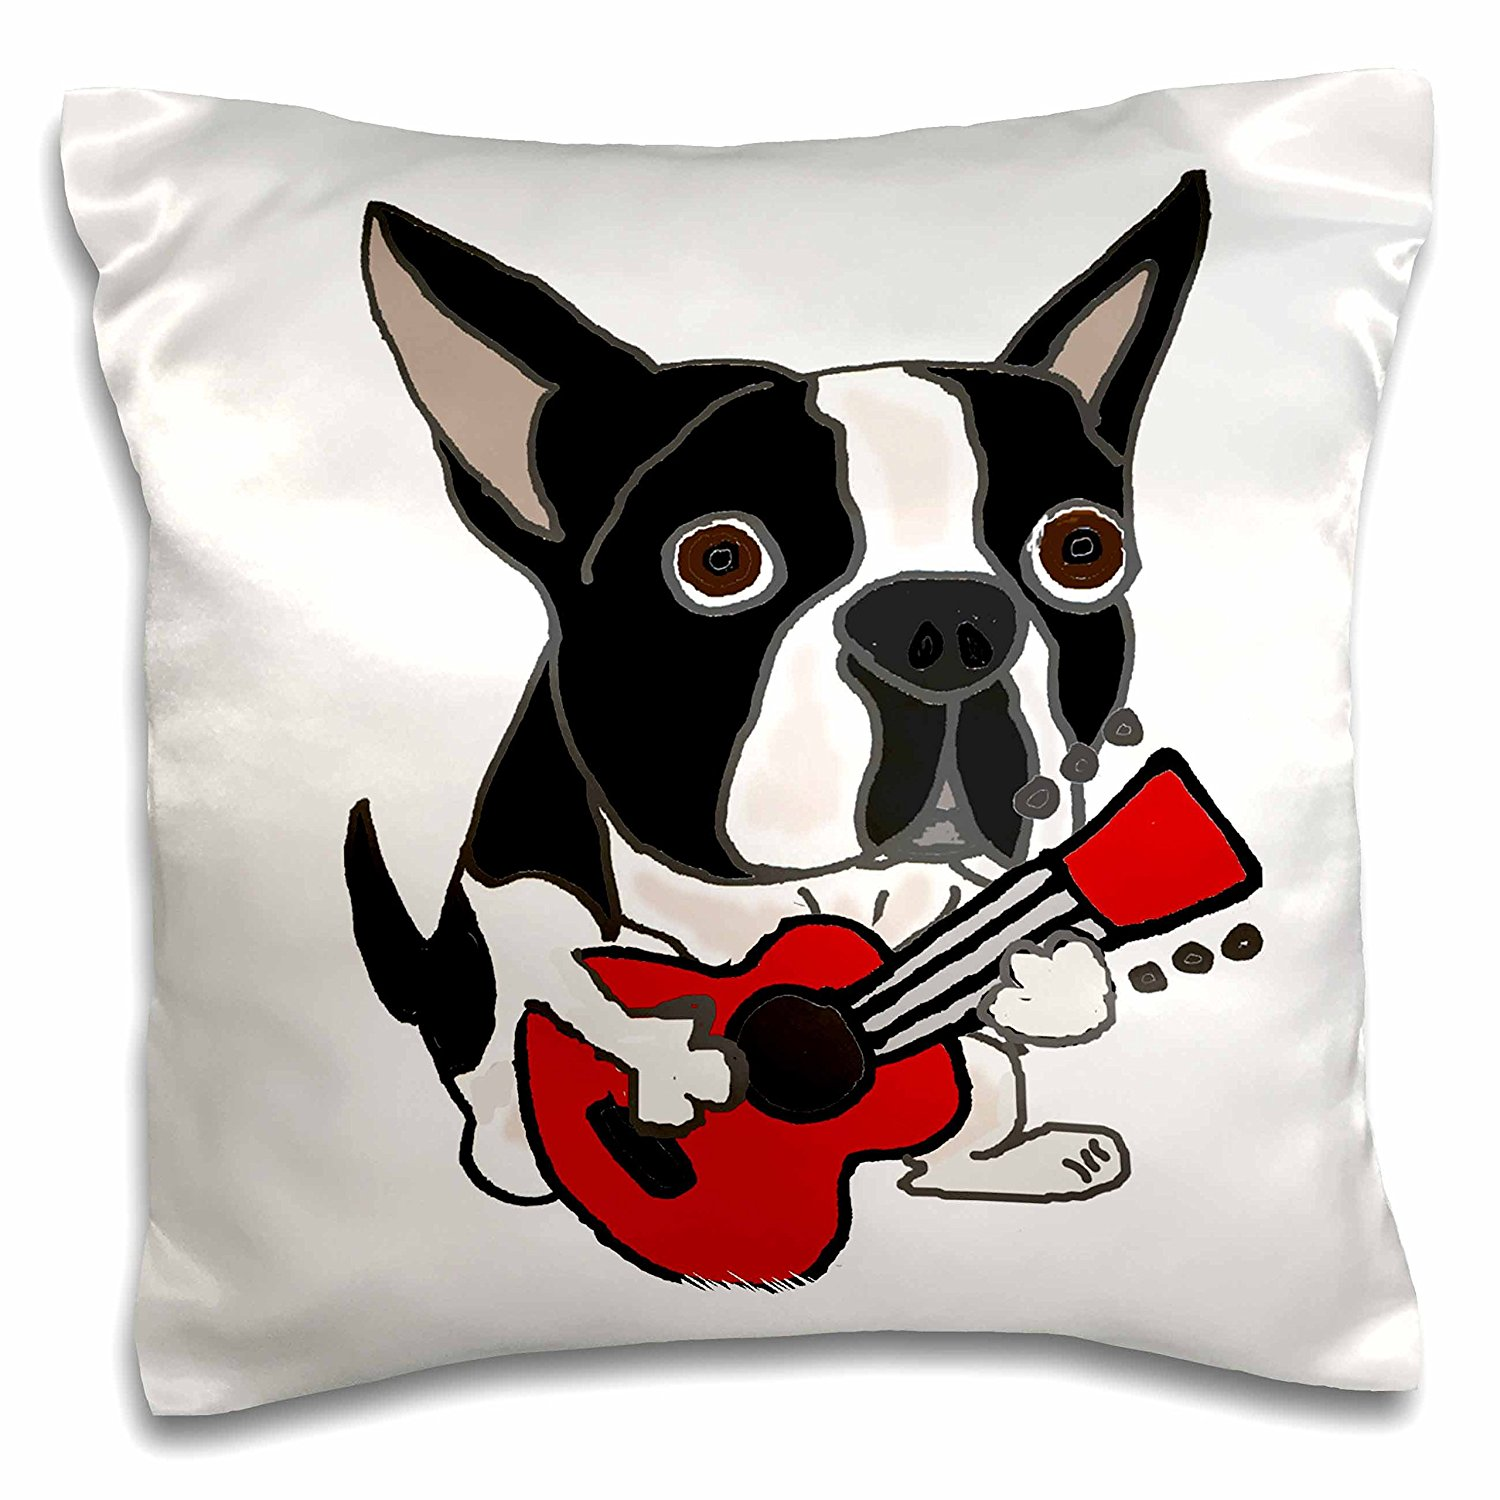 3dRose Funny Cute Boston Terrier Puppy Dog Playing Guitar Pillow Case, 16 x 16""